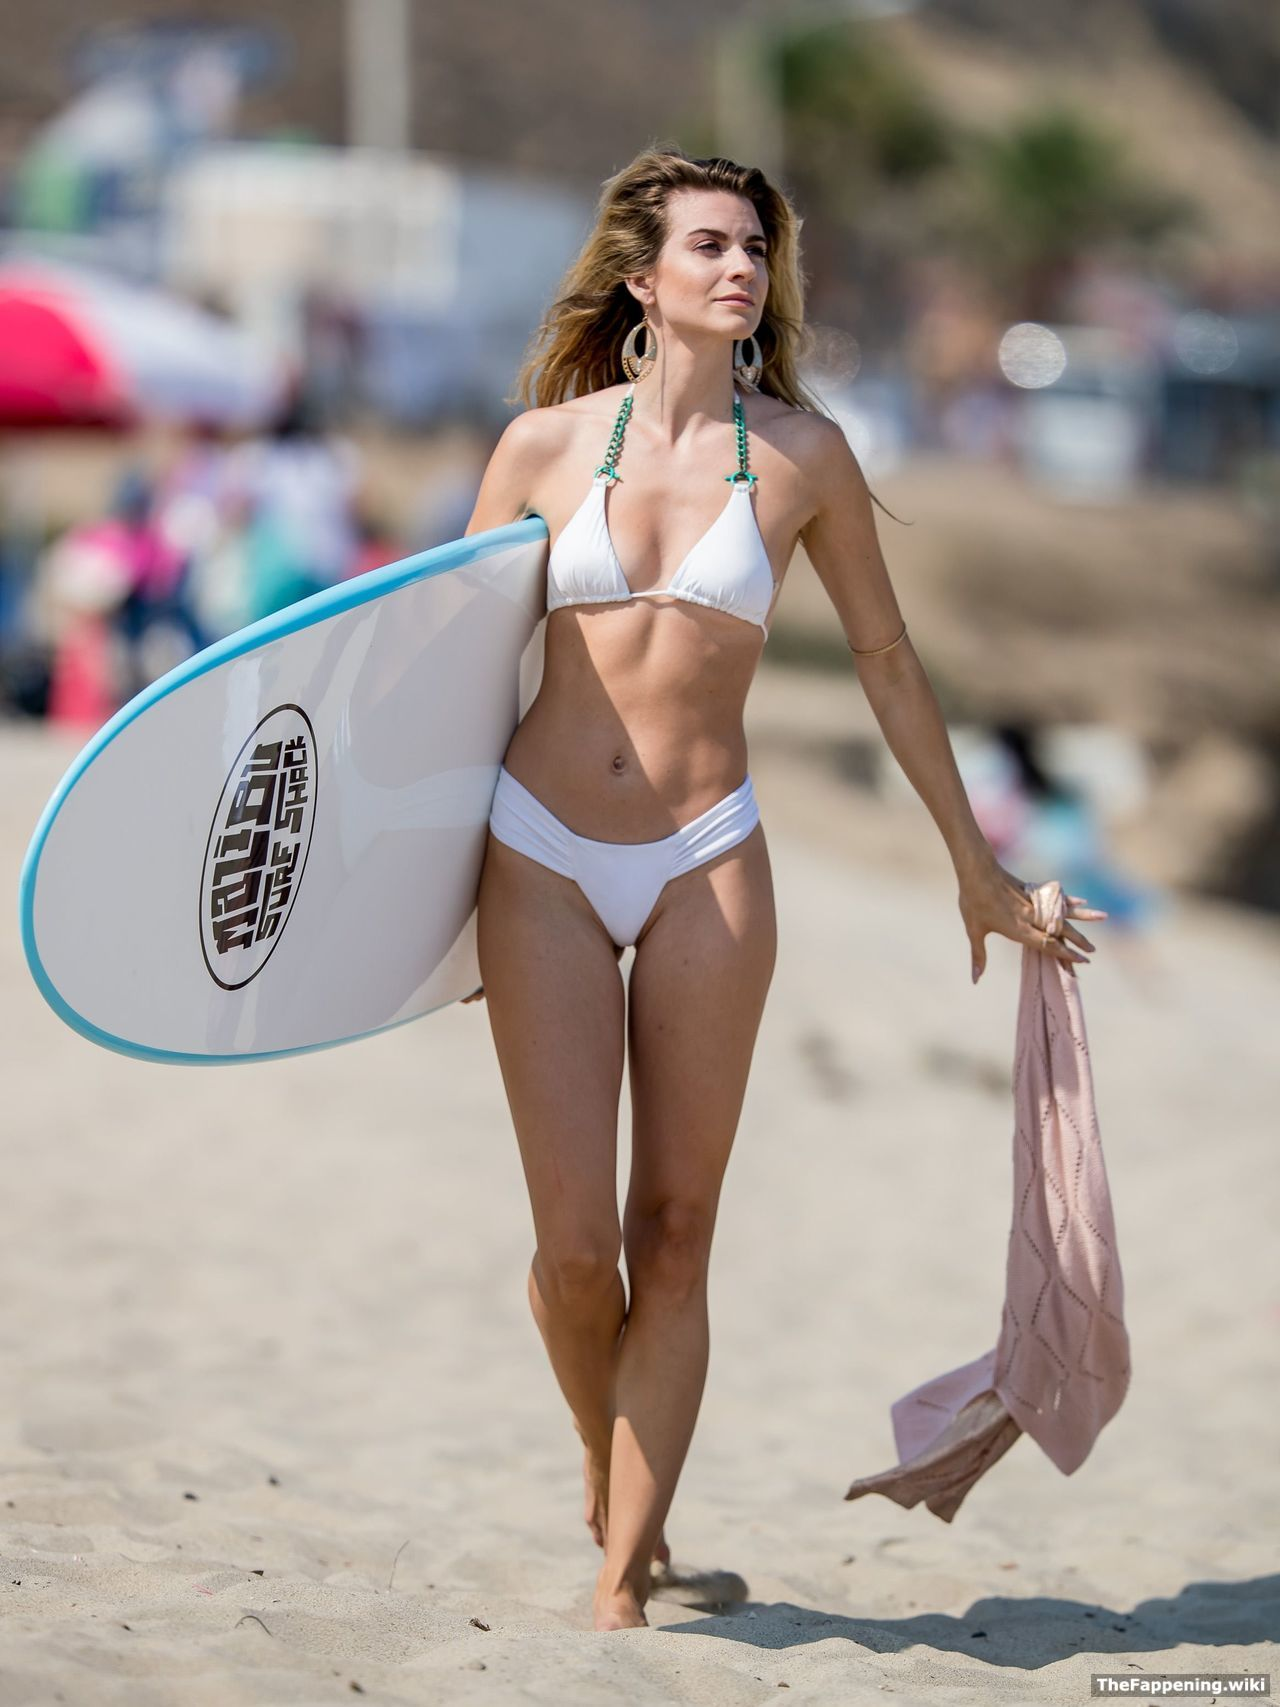 ICloud AnnaLynne McCord nudes (48 photo), Topless, Leaked, Twitter, swimsuit 2018